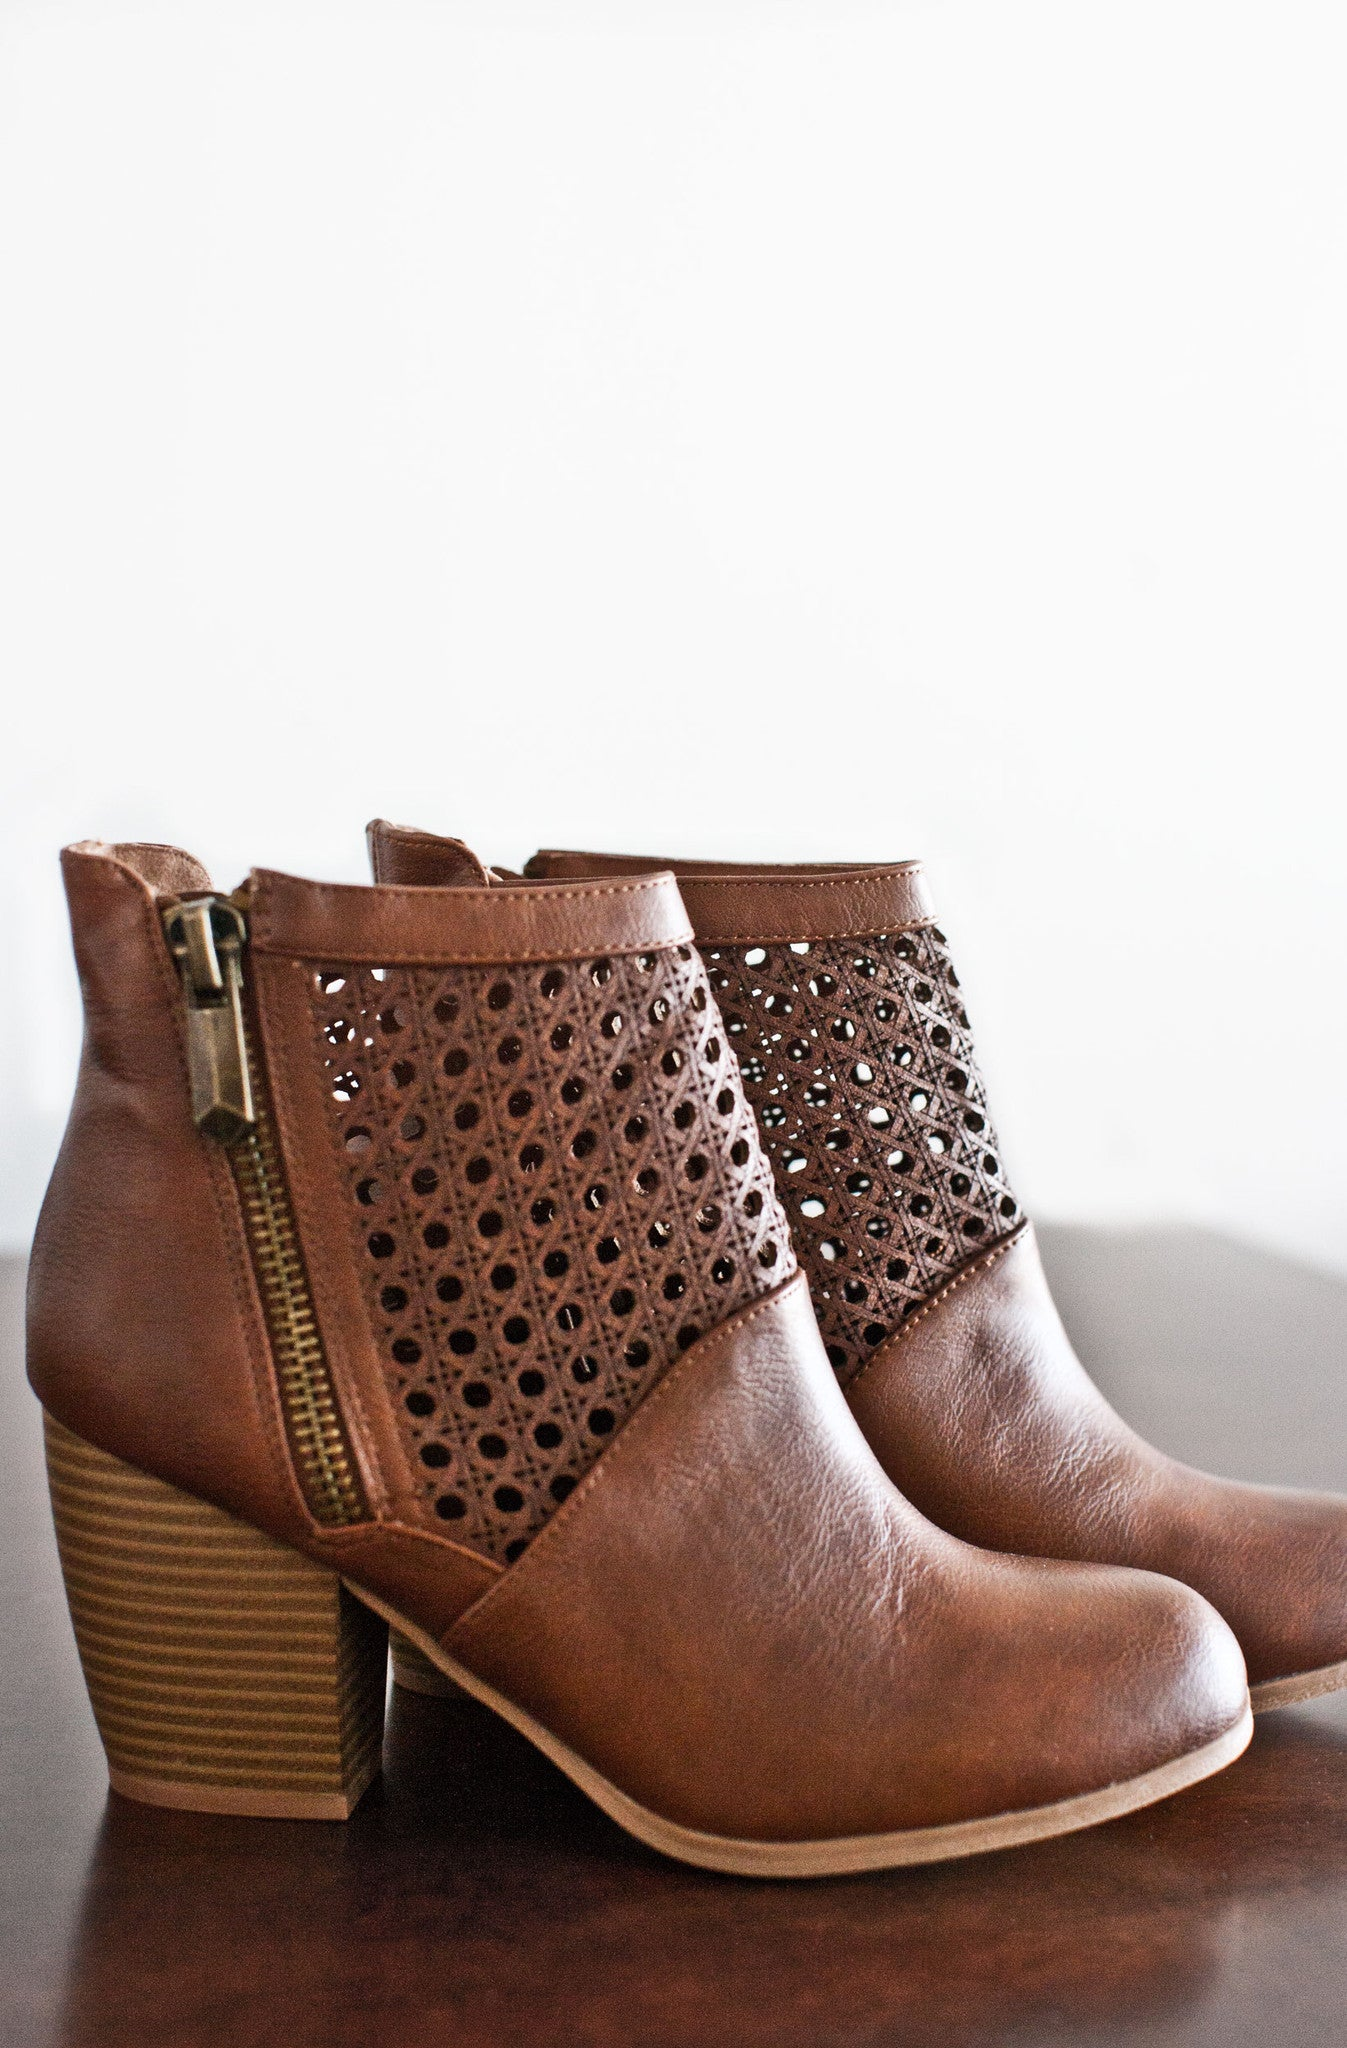 Emerson Ankle Booties-Cognac  096d1d4d226